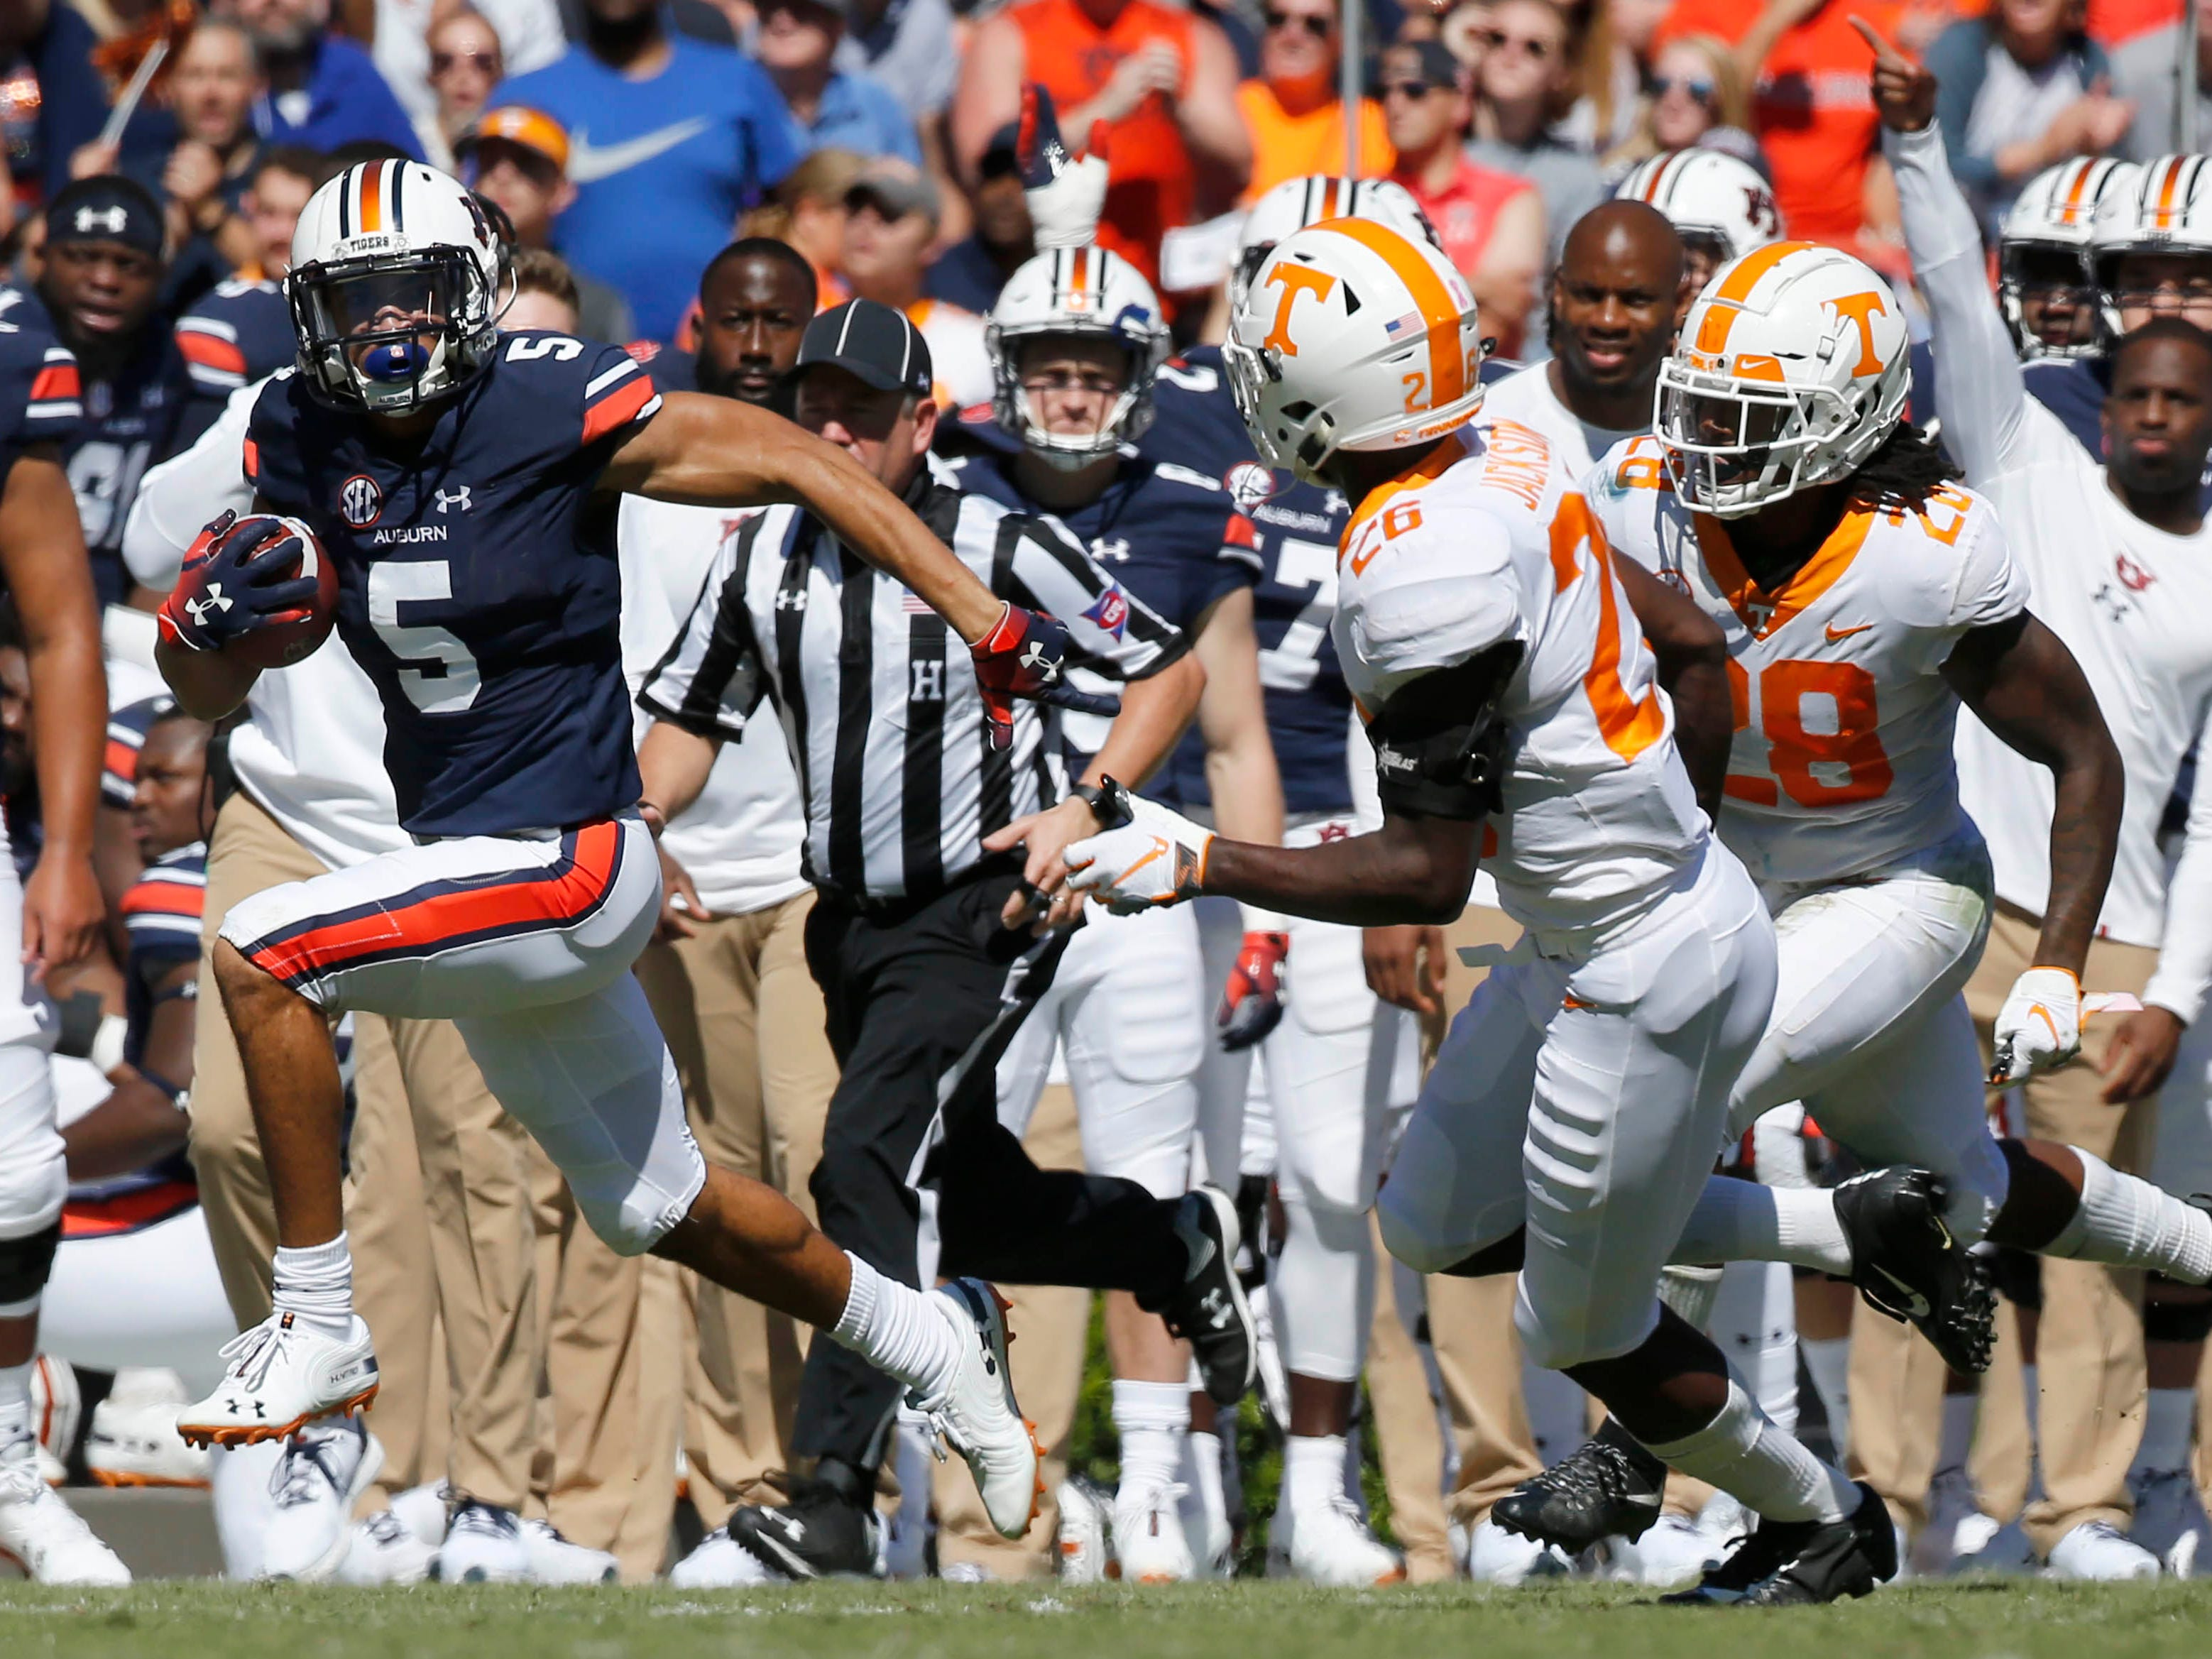 Tennessee defenders Theo Jackson (26) and Baylen Buchanan can't catch Auburn receiver Anthony Schwartz (5), who streaks for a second-quarter touchdown.